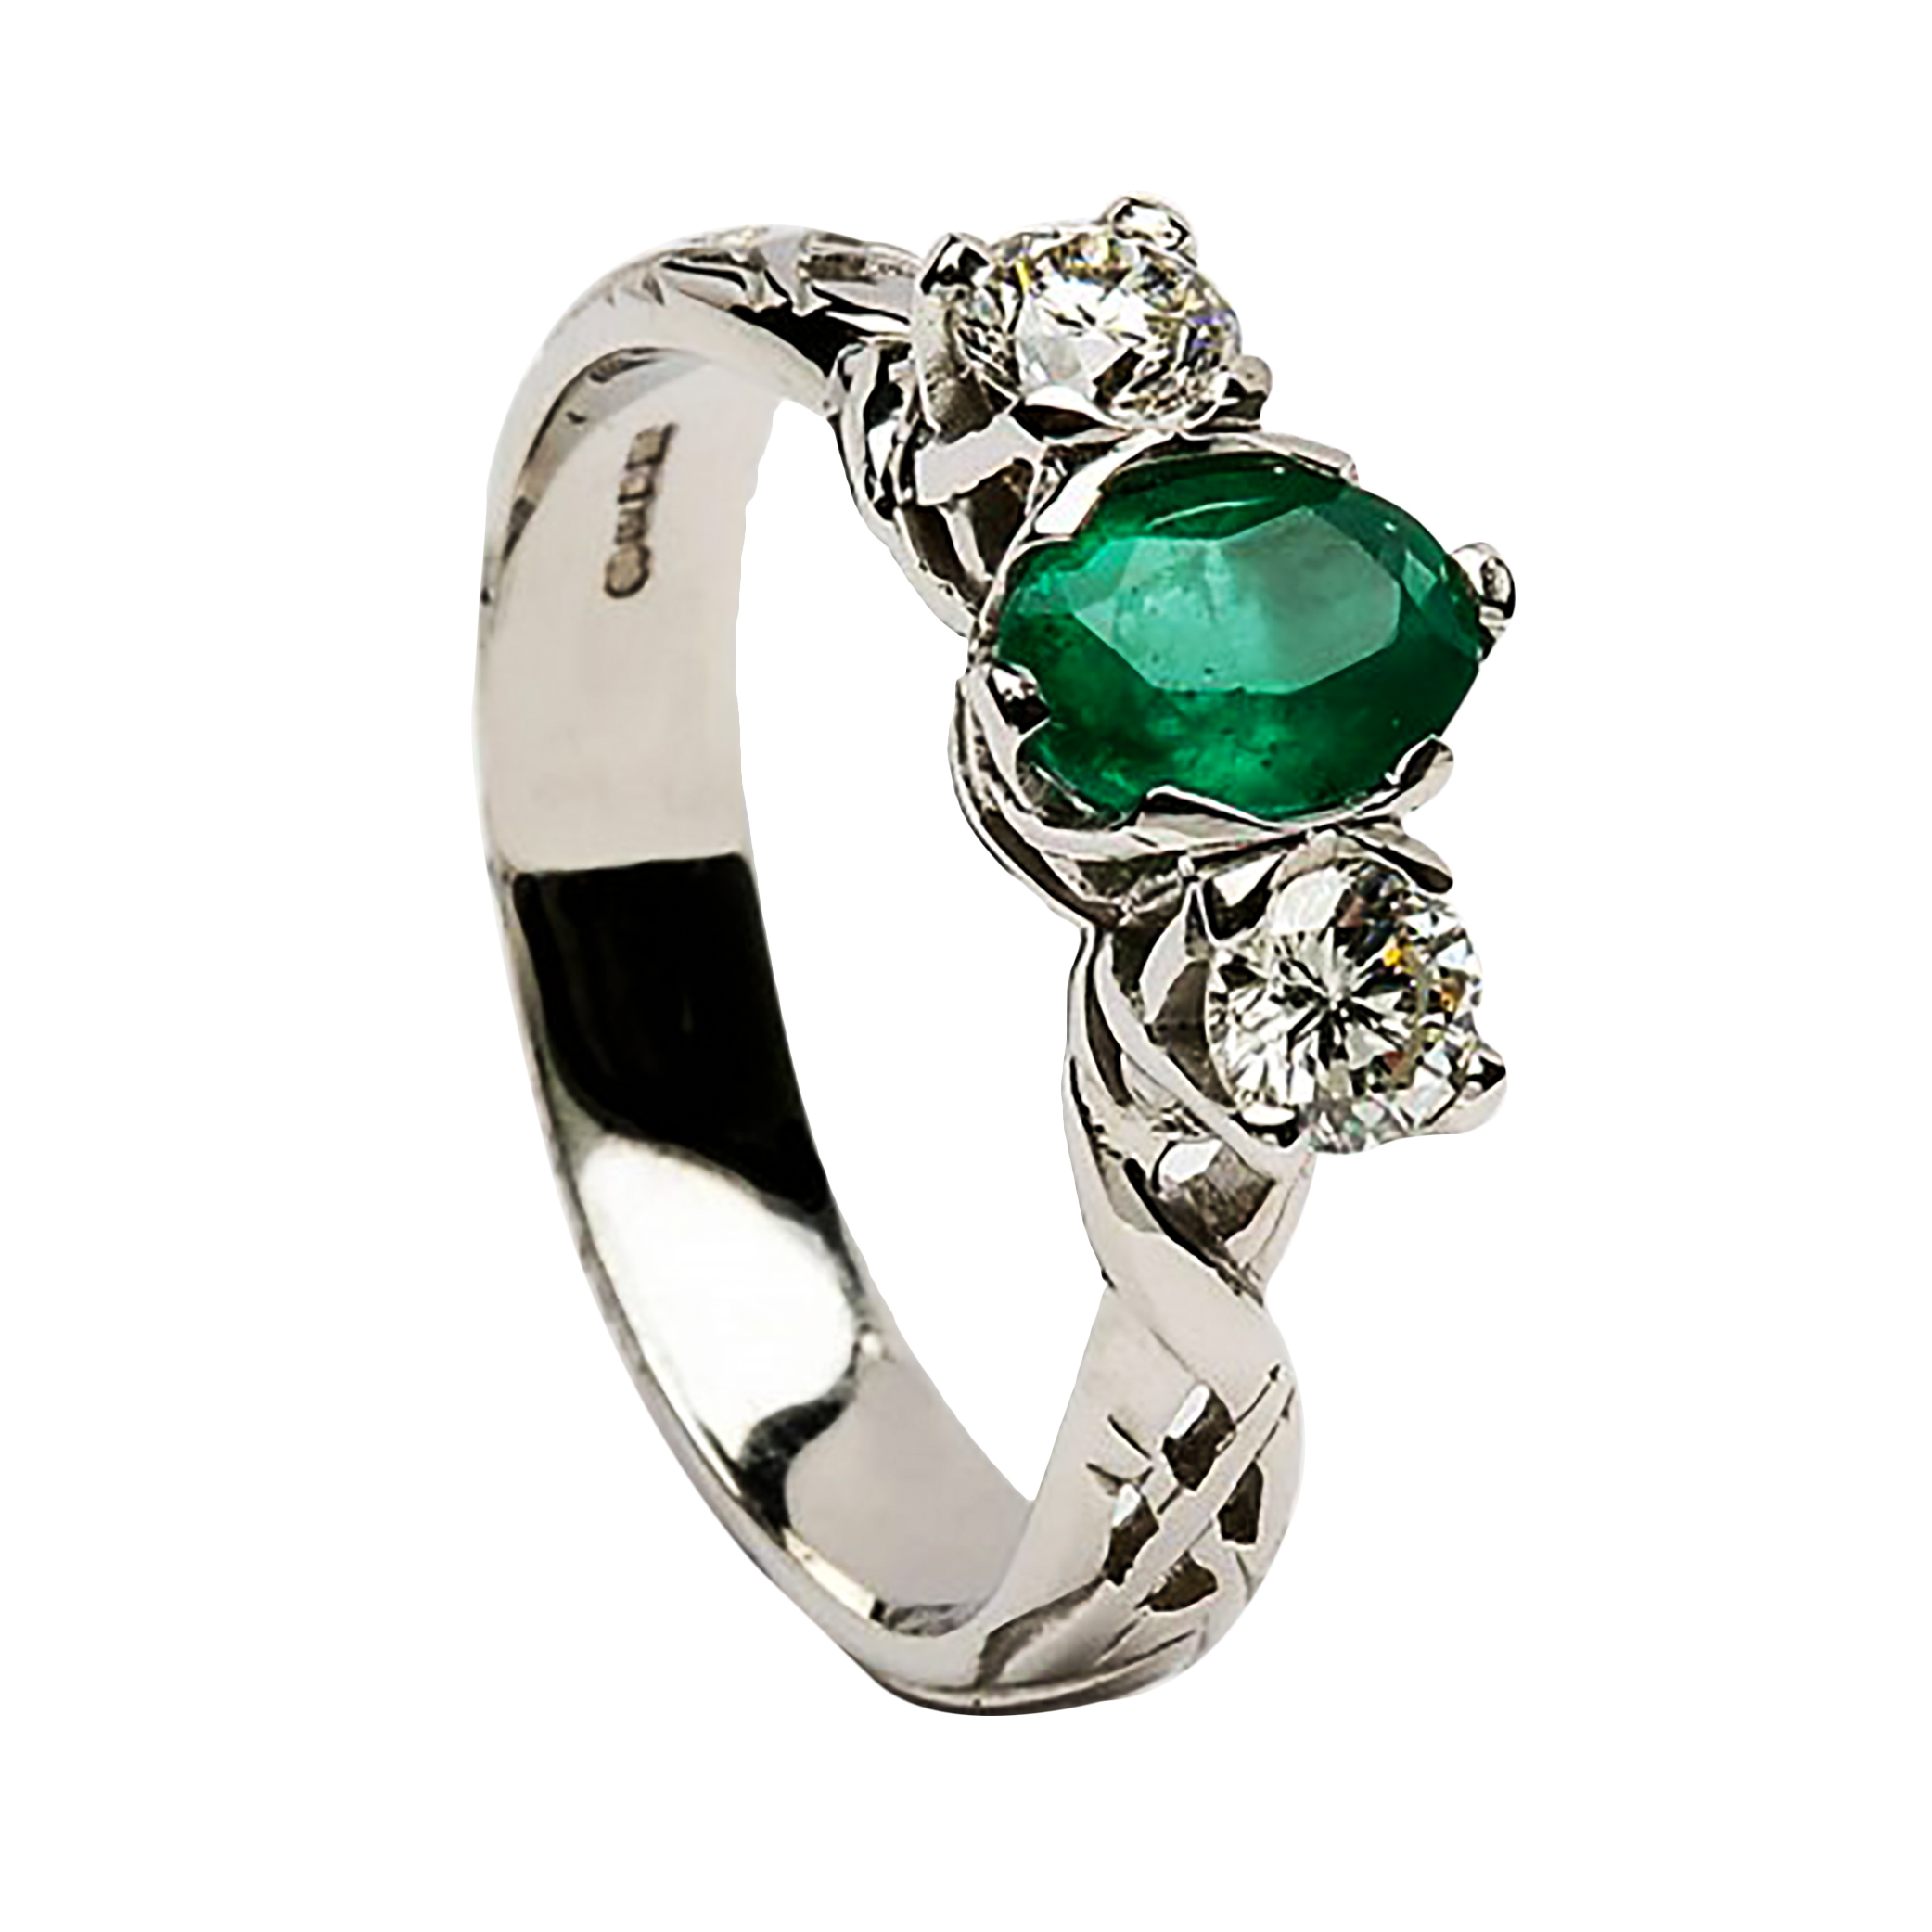 white col auktionshaus a ring emerald columbian catalogues an projects and gold auction lot csm en lempertz